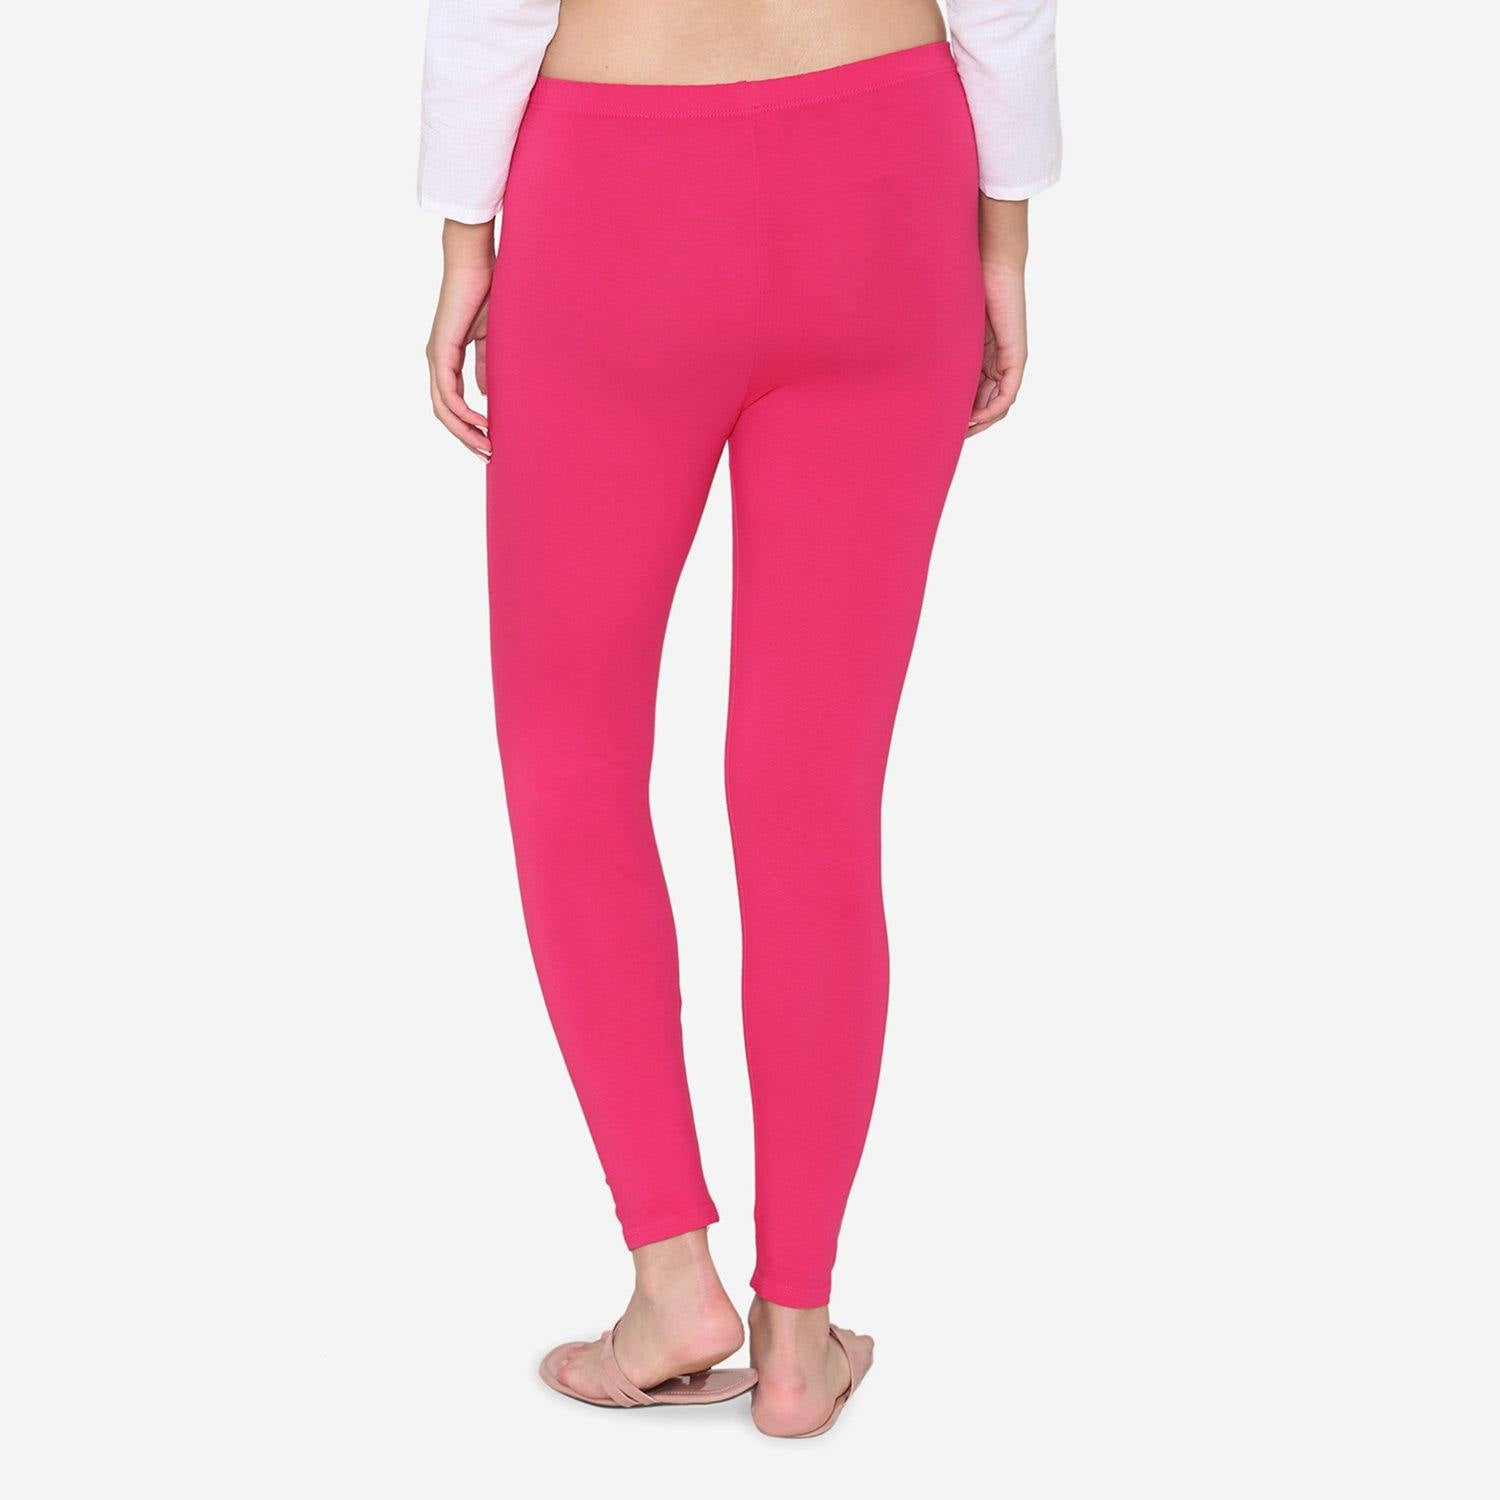 Best Cotton Leggings